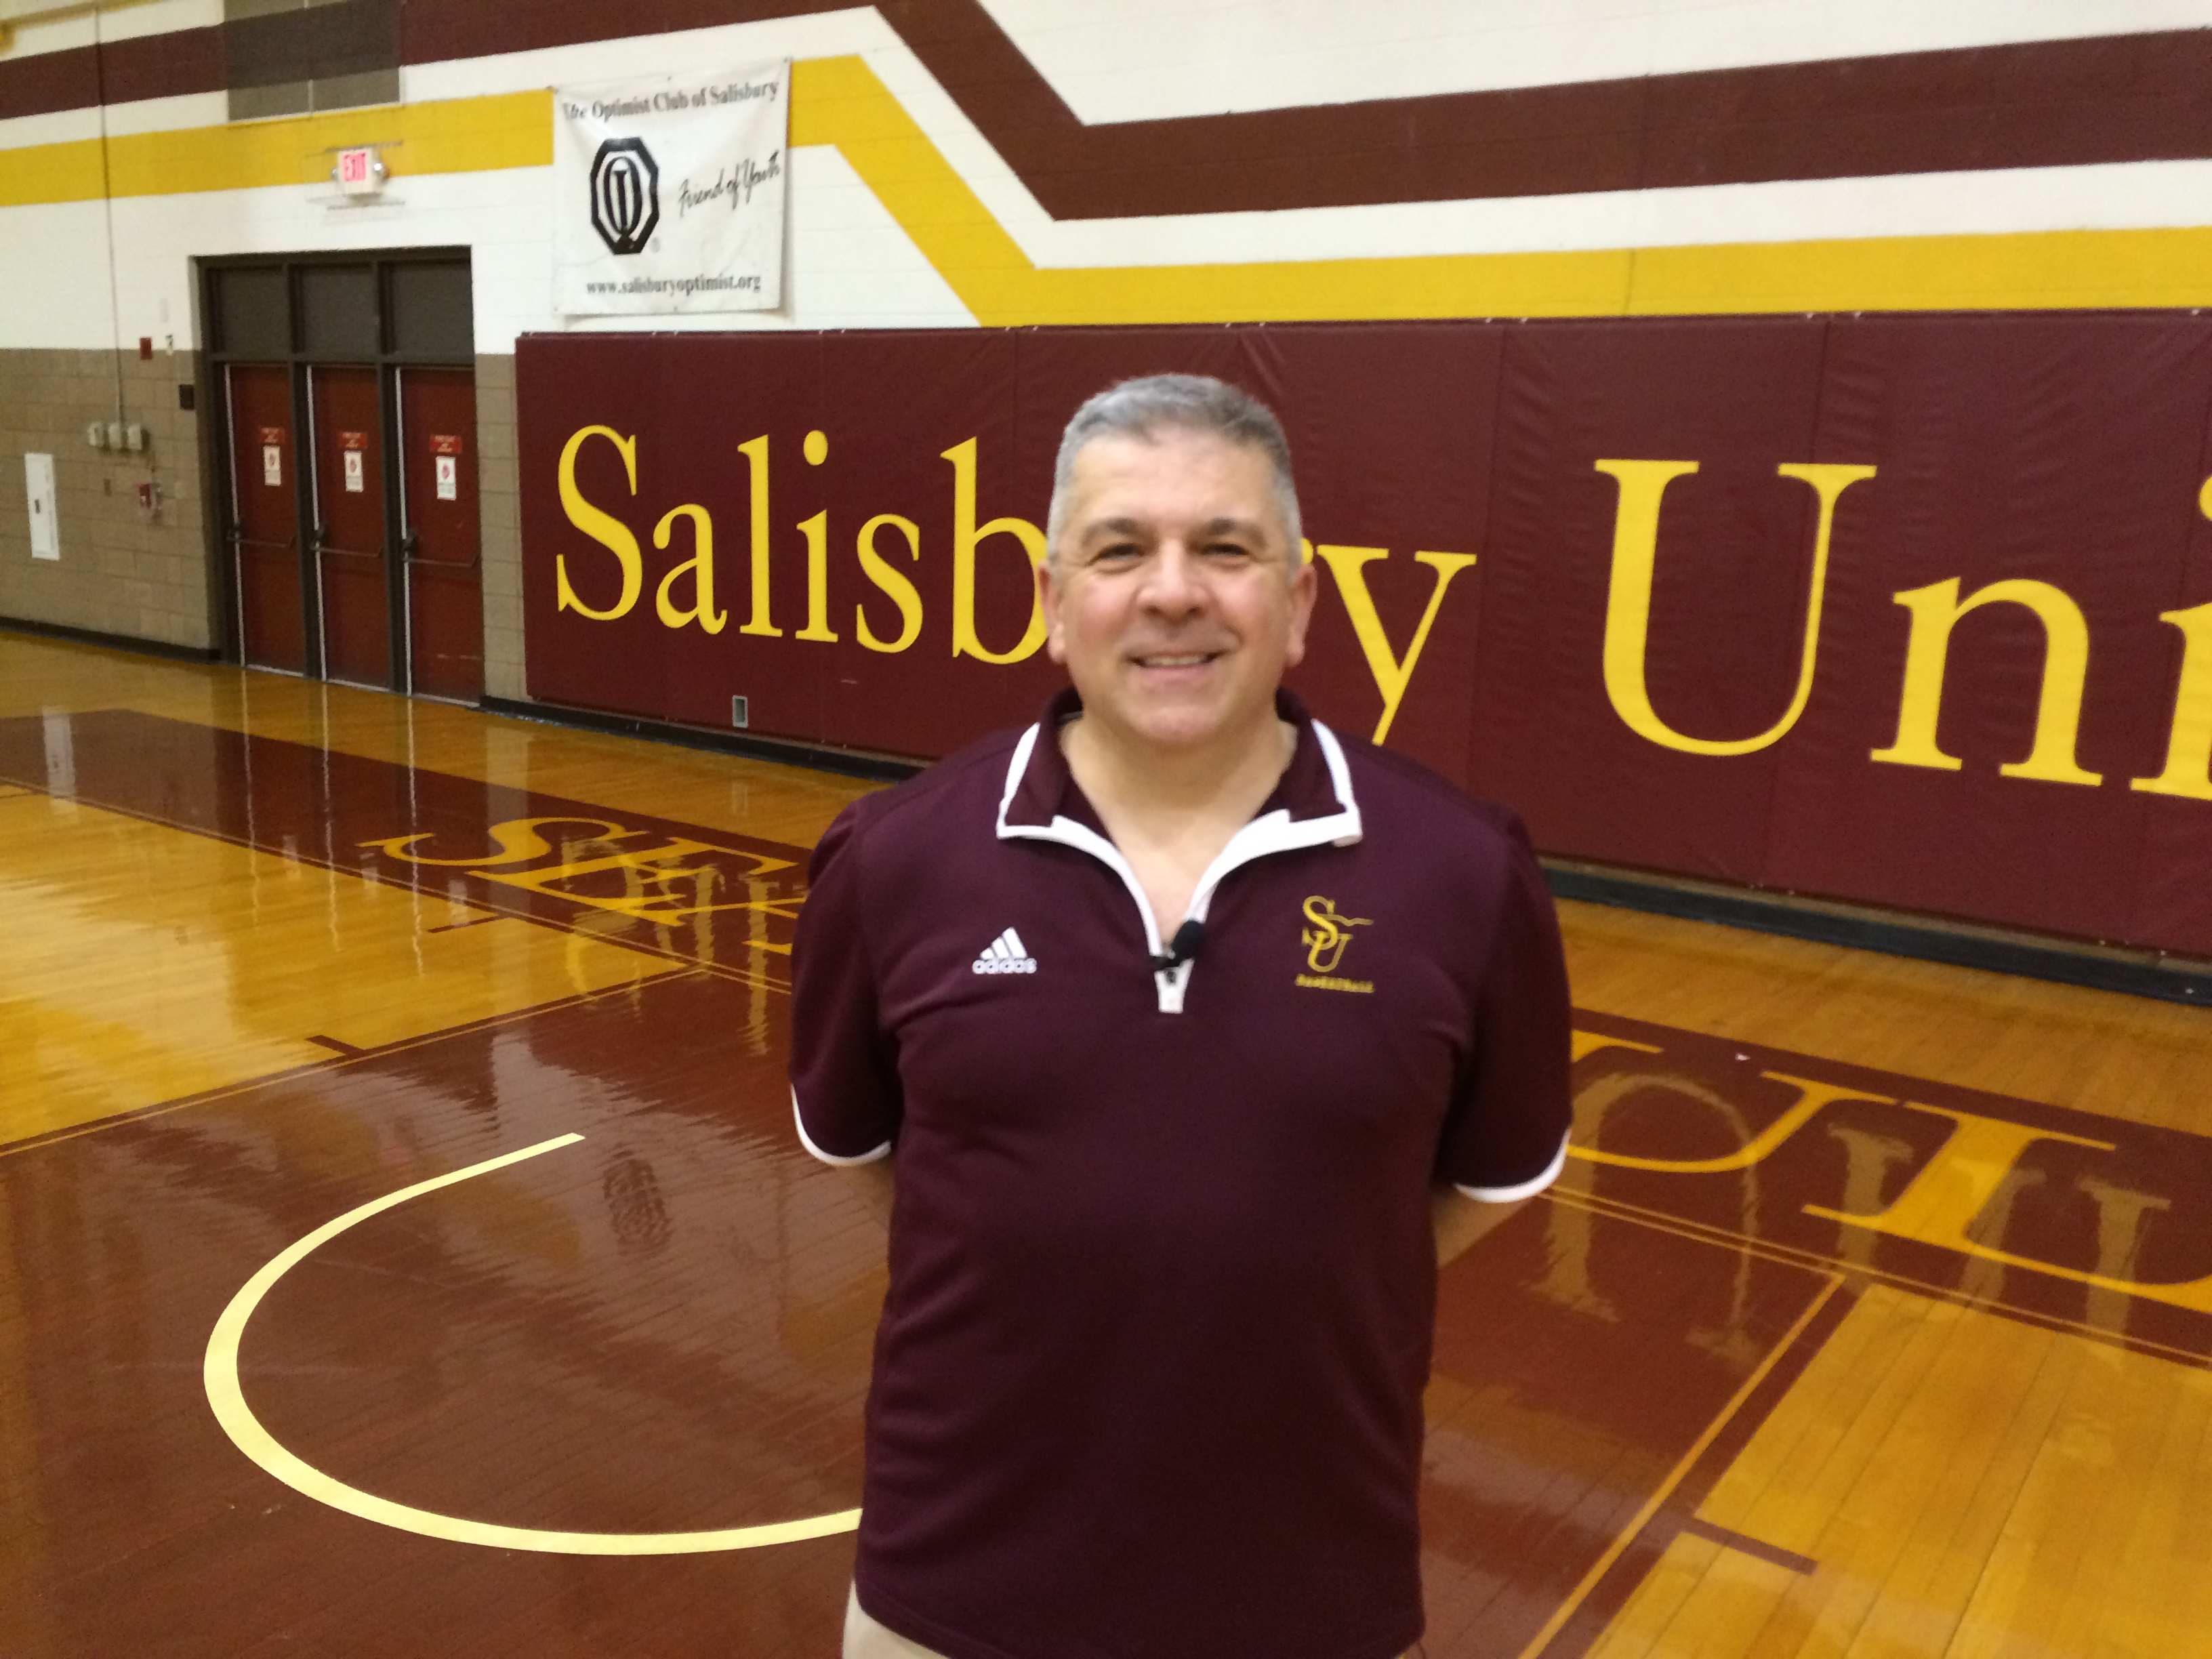 Interview of the Week – Salisbury University Men's Basketball Coach Andrew Sachs